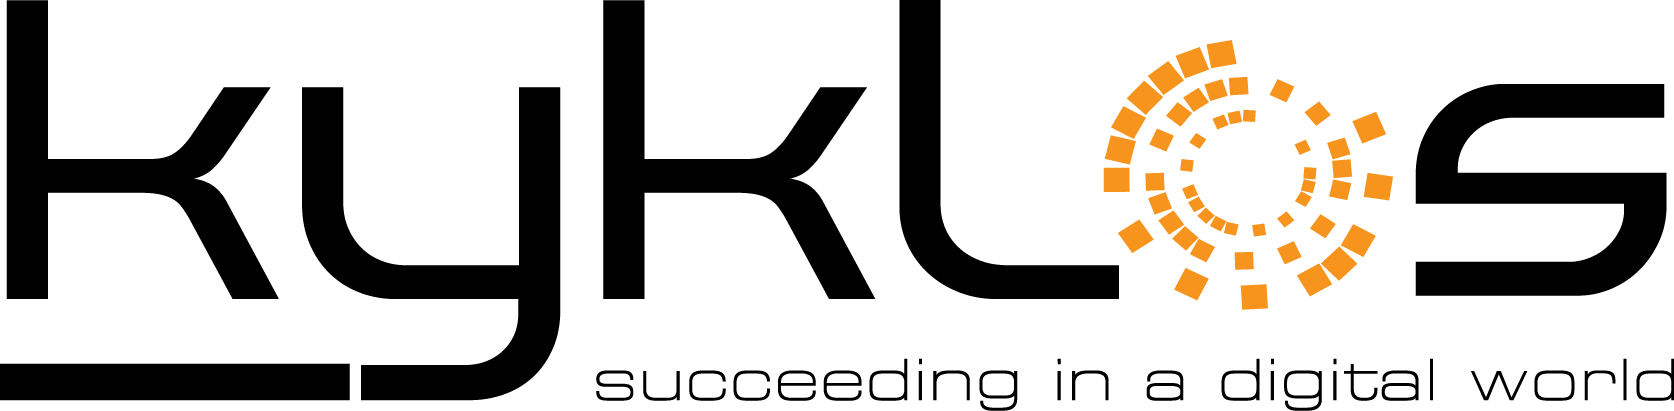 Kyklos-Web Services-Digital Marketing Logo